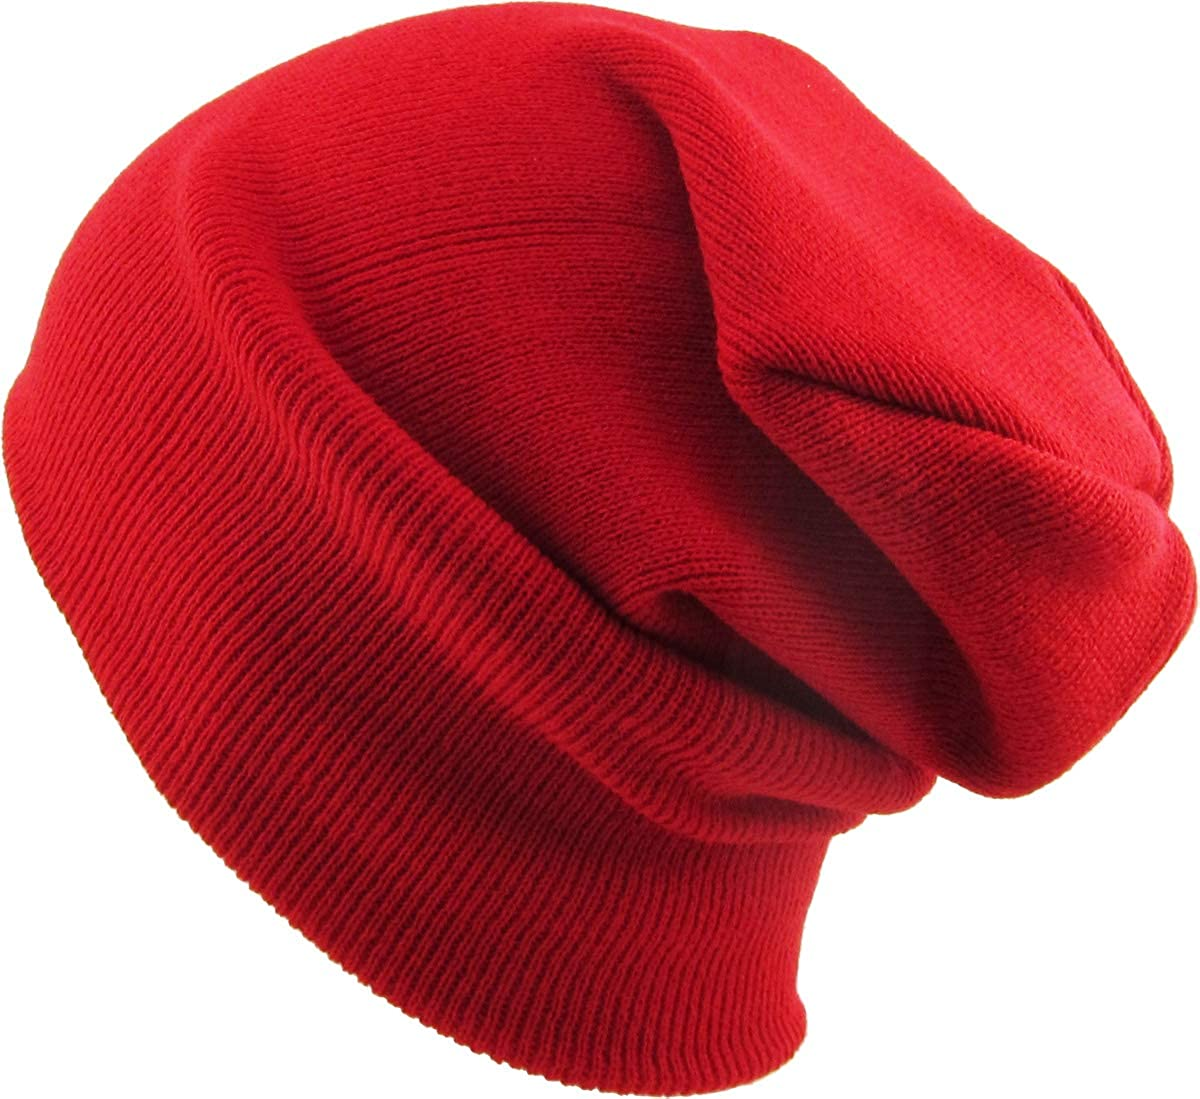 Thick and Warm Mens Daily Cuffed Beanie OR Slouchy Made in USA for USA Knit HAT Cap Womens Kids